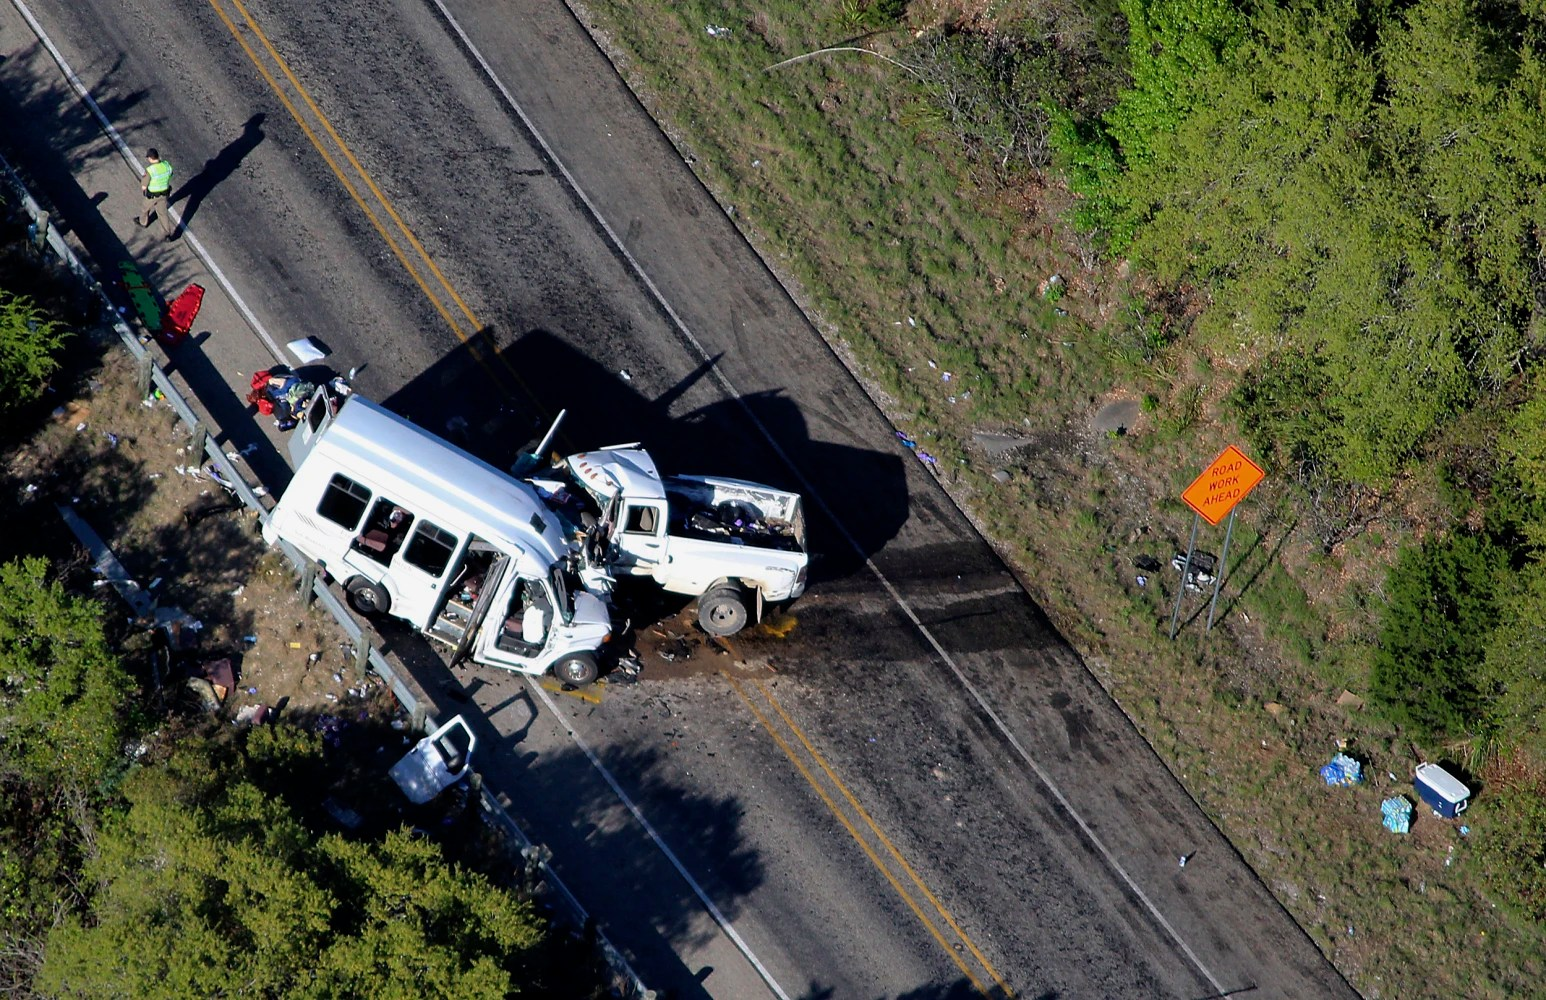 Texting While Driving May Have Caused TX Truck/Van Crash